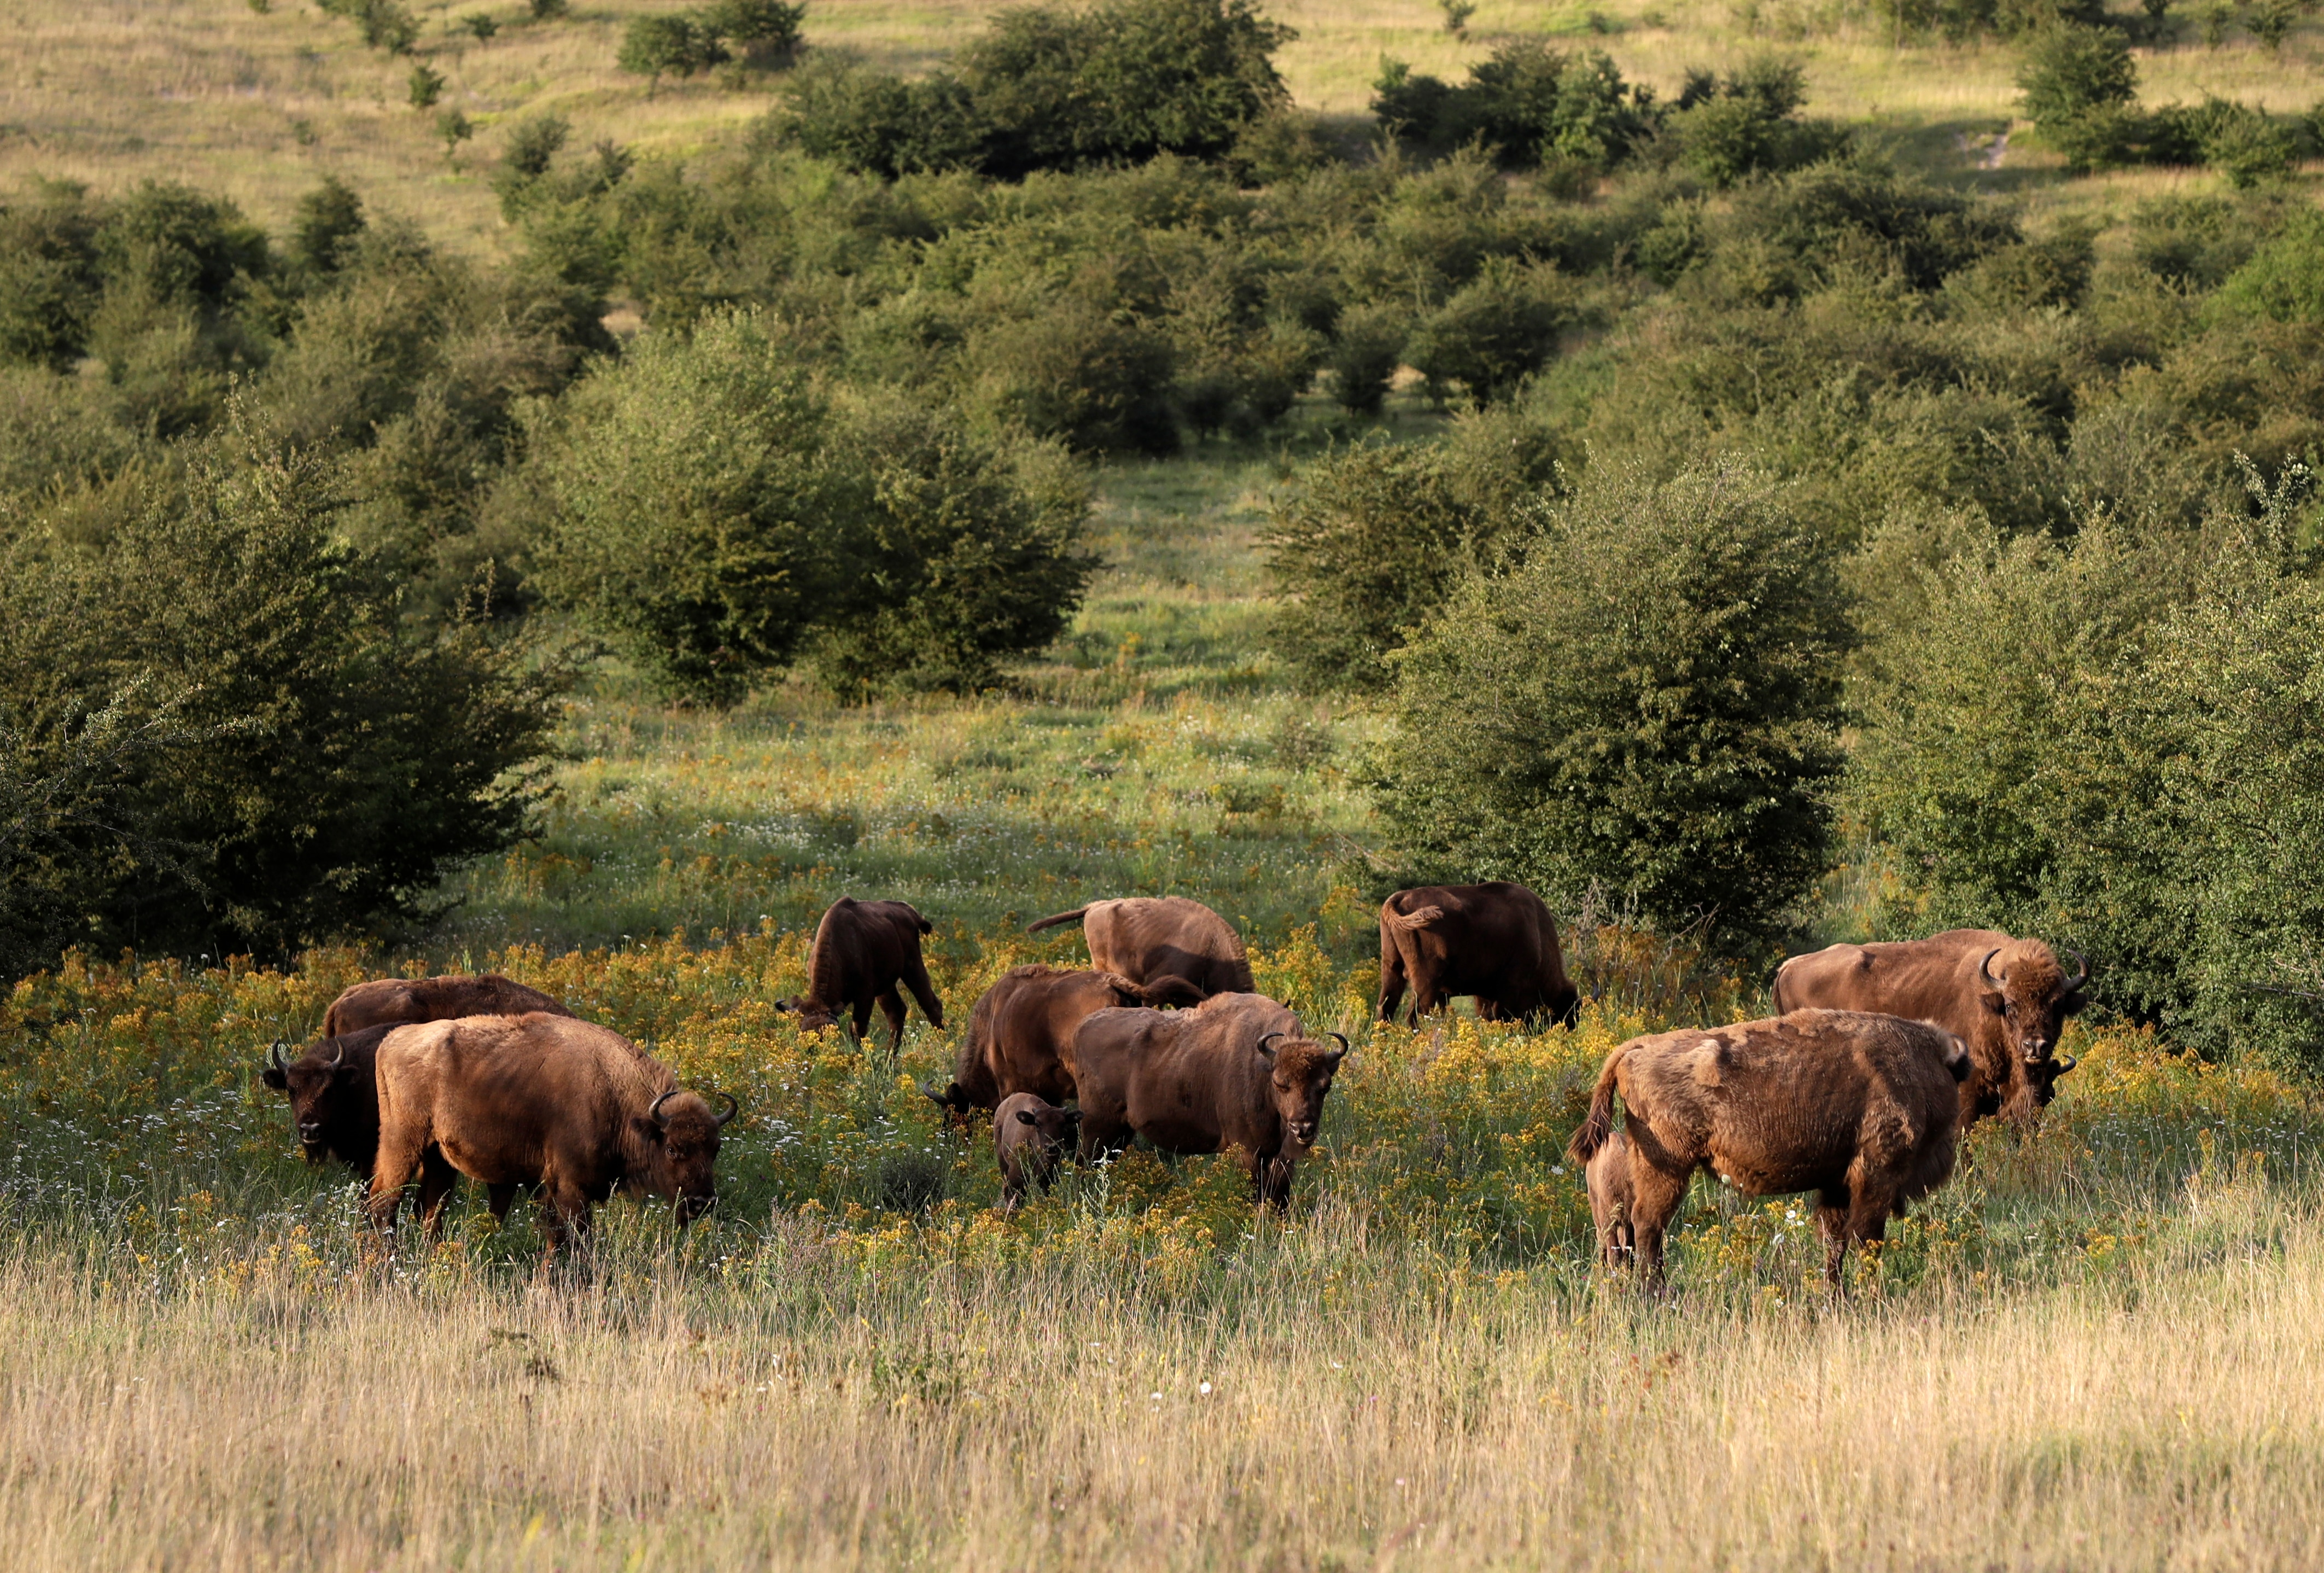 Extinct for Millennia, Bison Back in Spain to Fight Climate Change - Voice of America